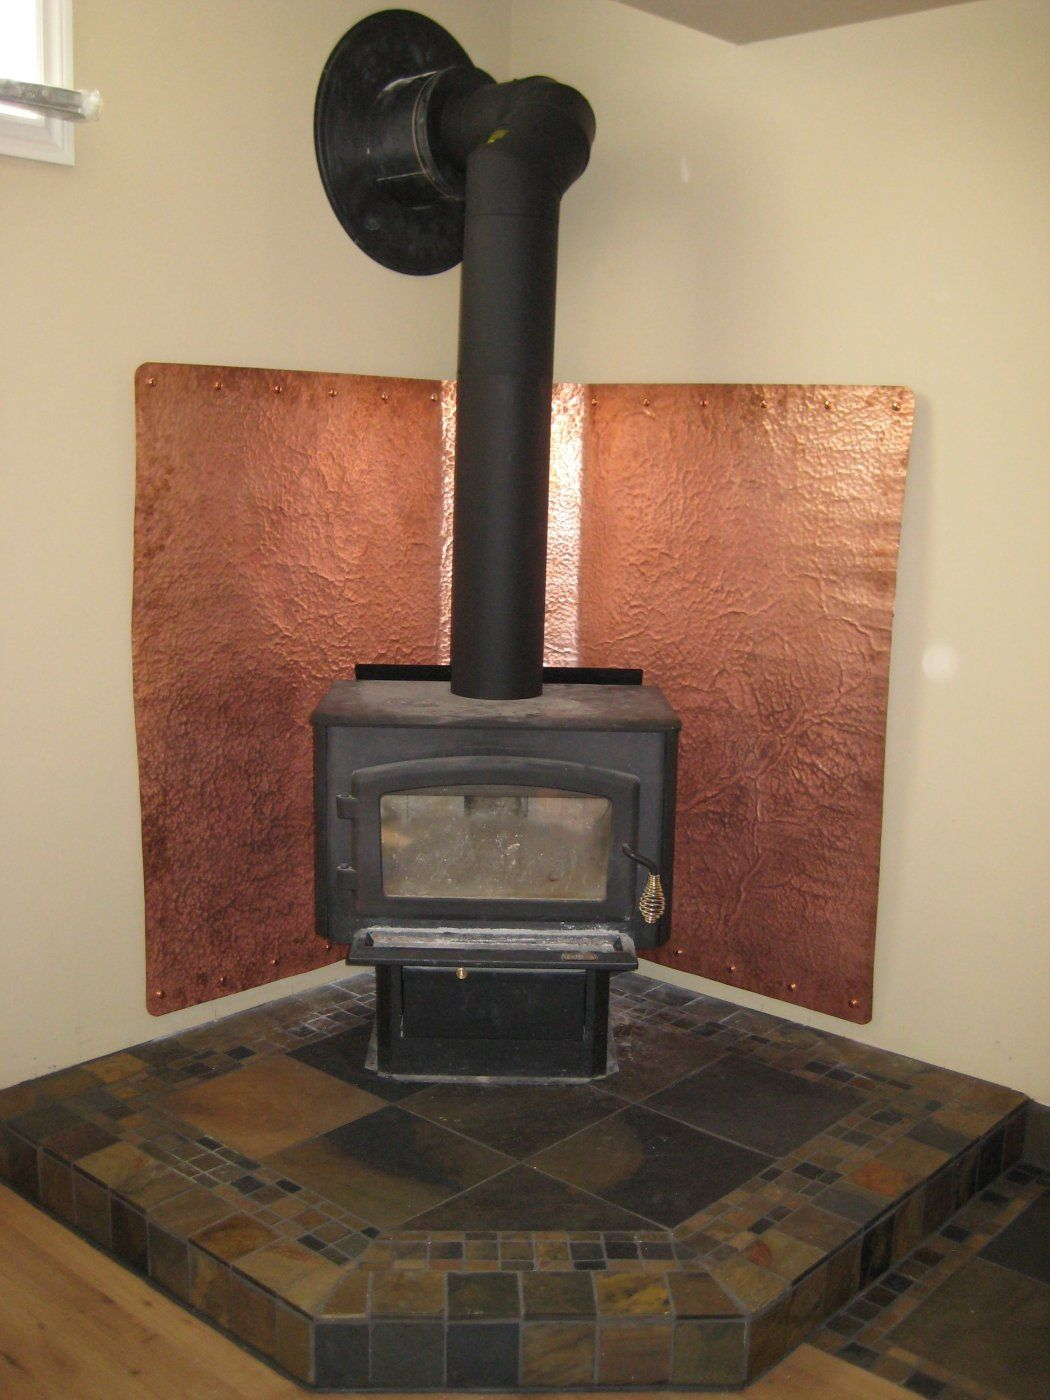 14 best images about Woodstove on Pinterest | Home projects, Different  types of and Hearth - 14 Best Images About Woodstove On Pinterest Home Projects